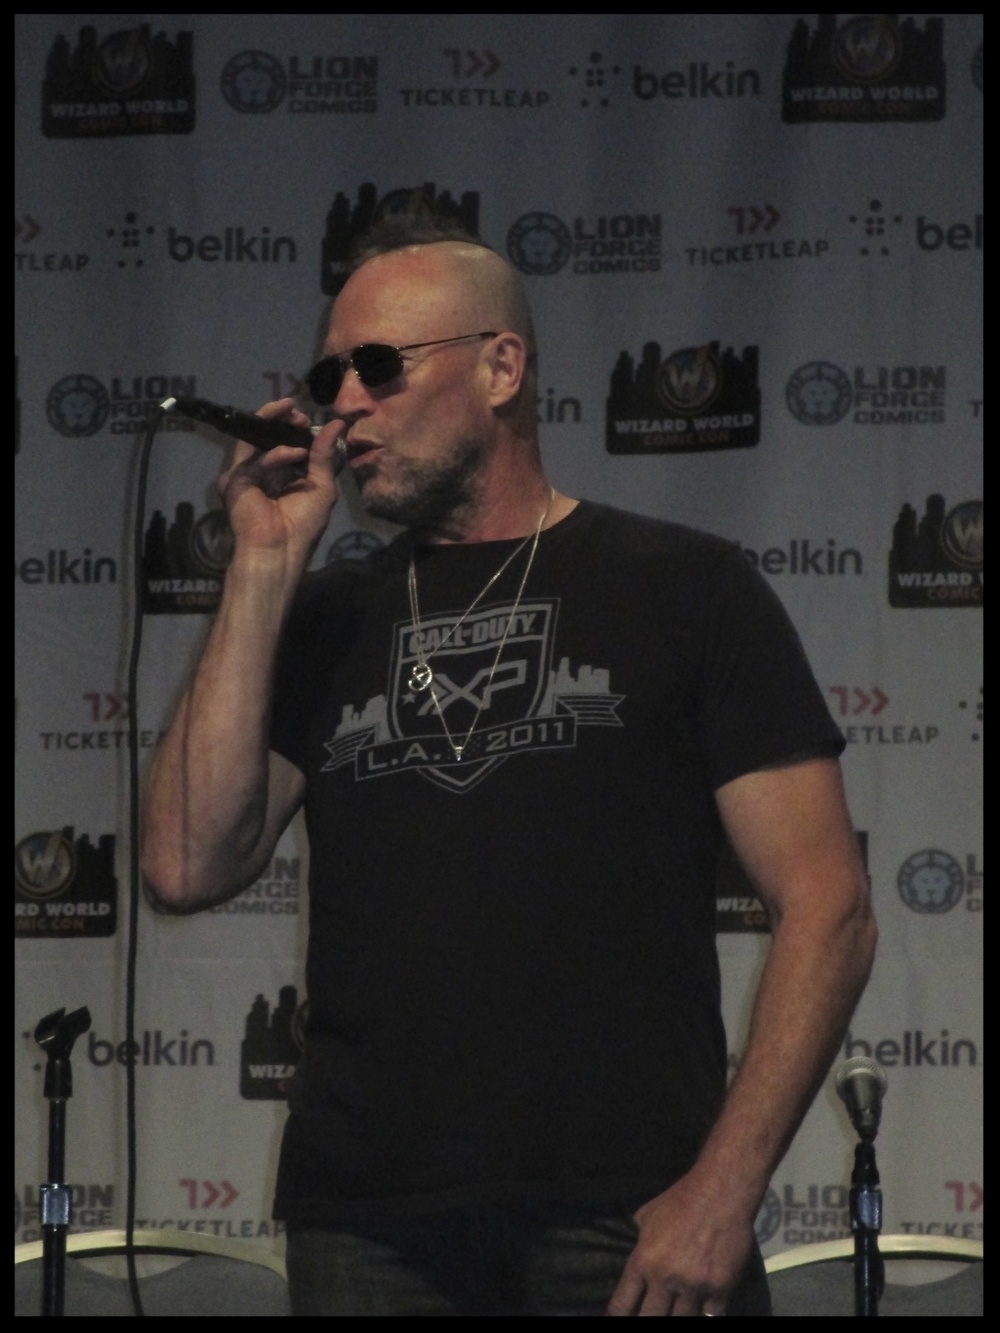 Philly comic con 13 Michael Rooker 2.jpg